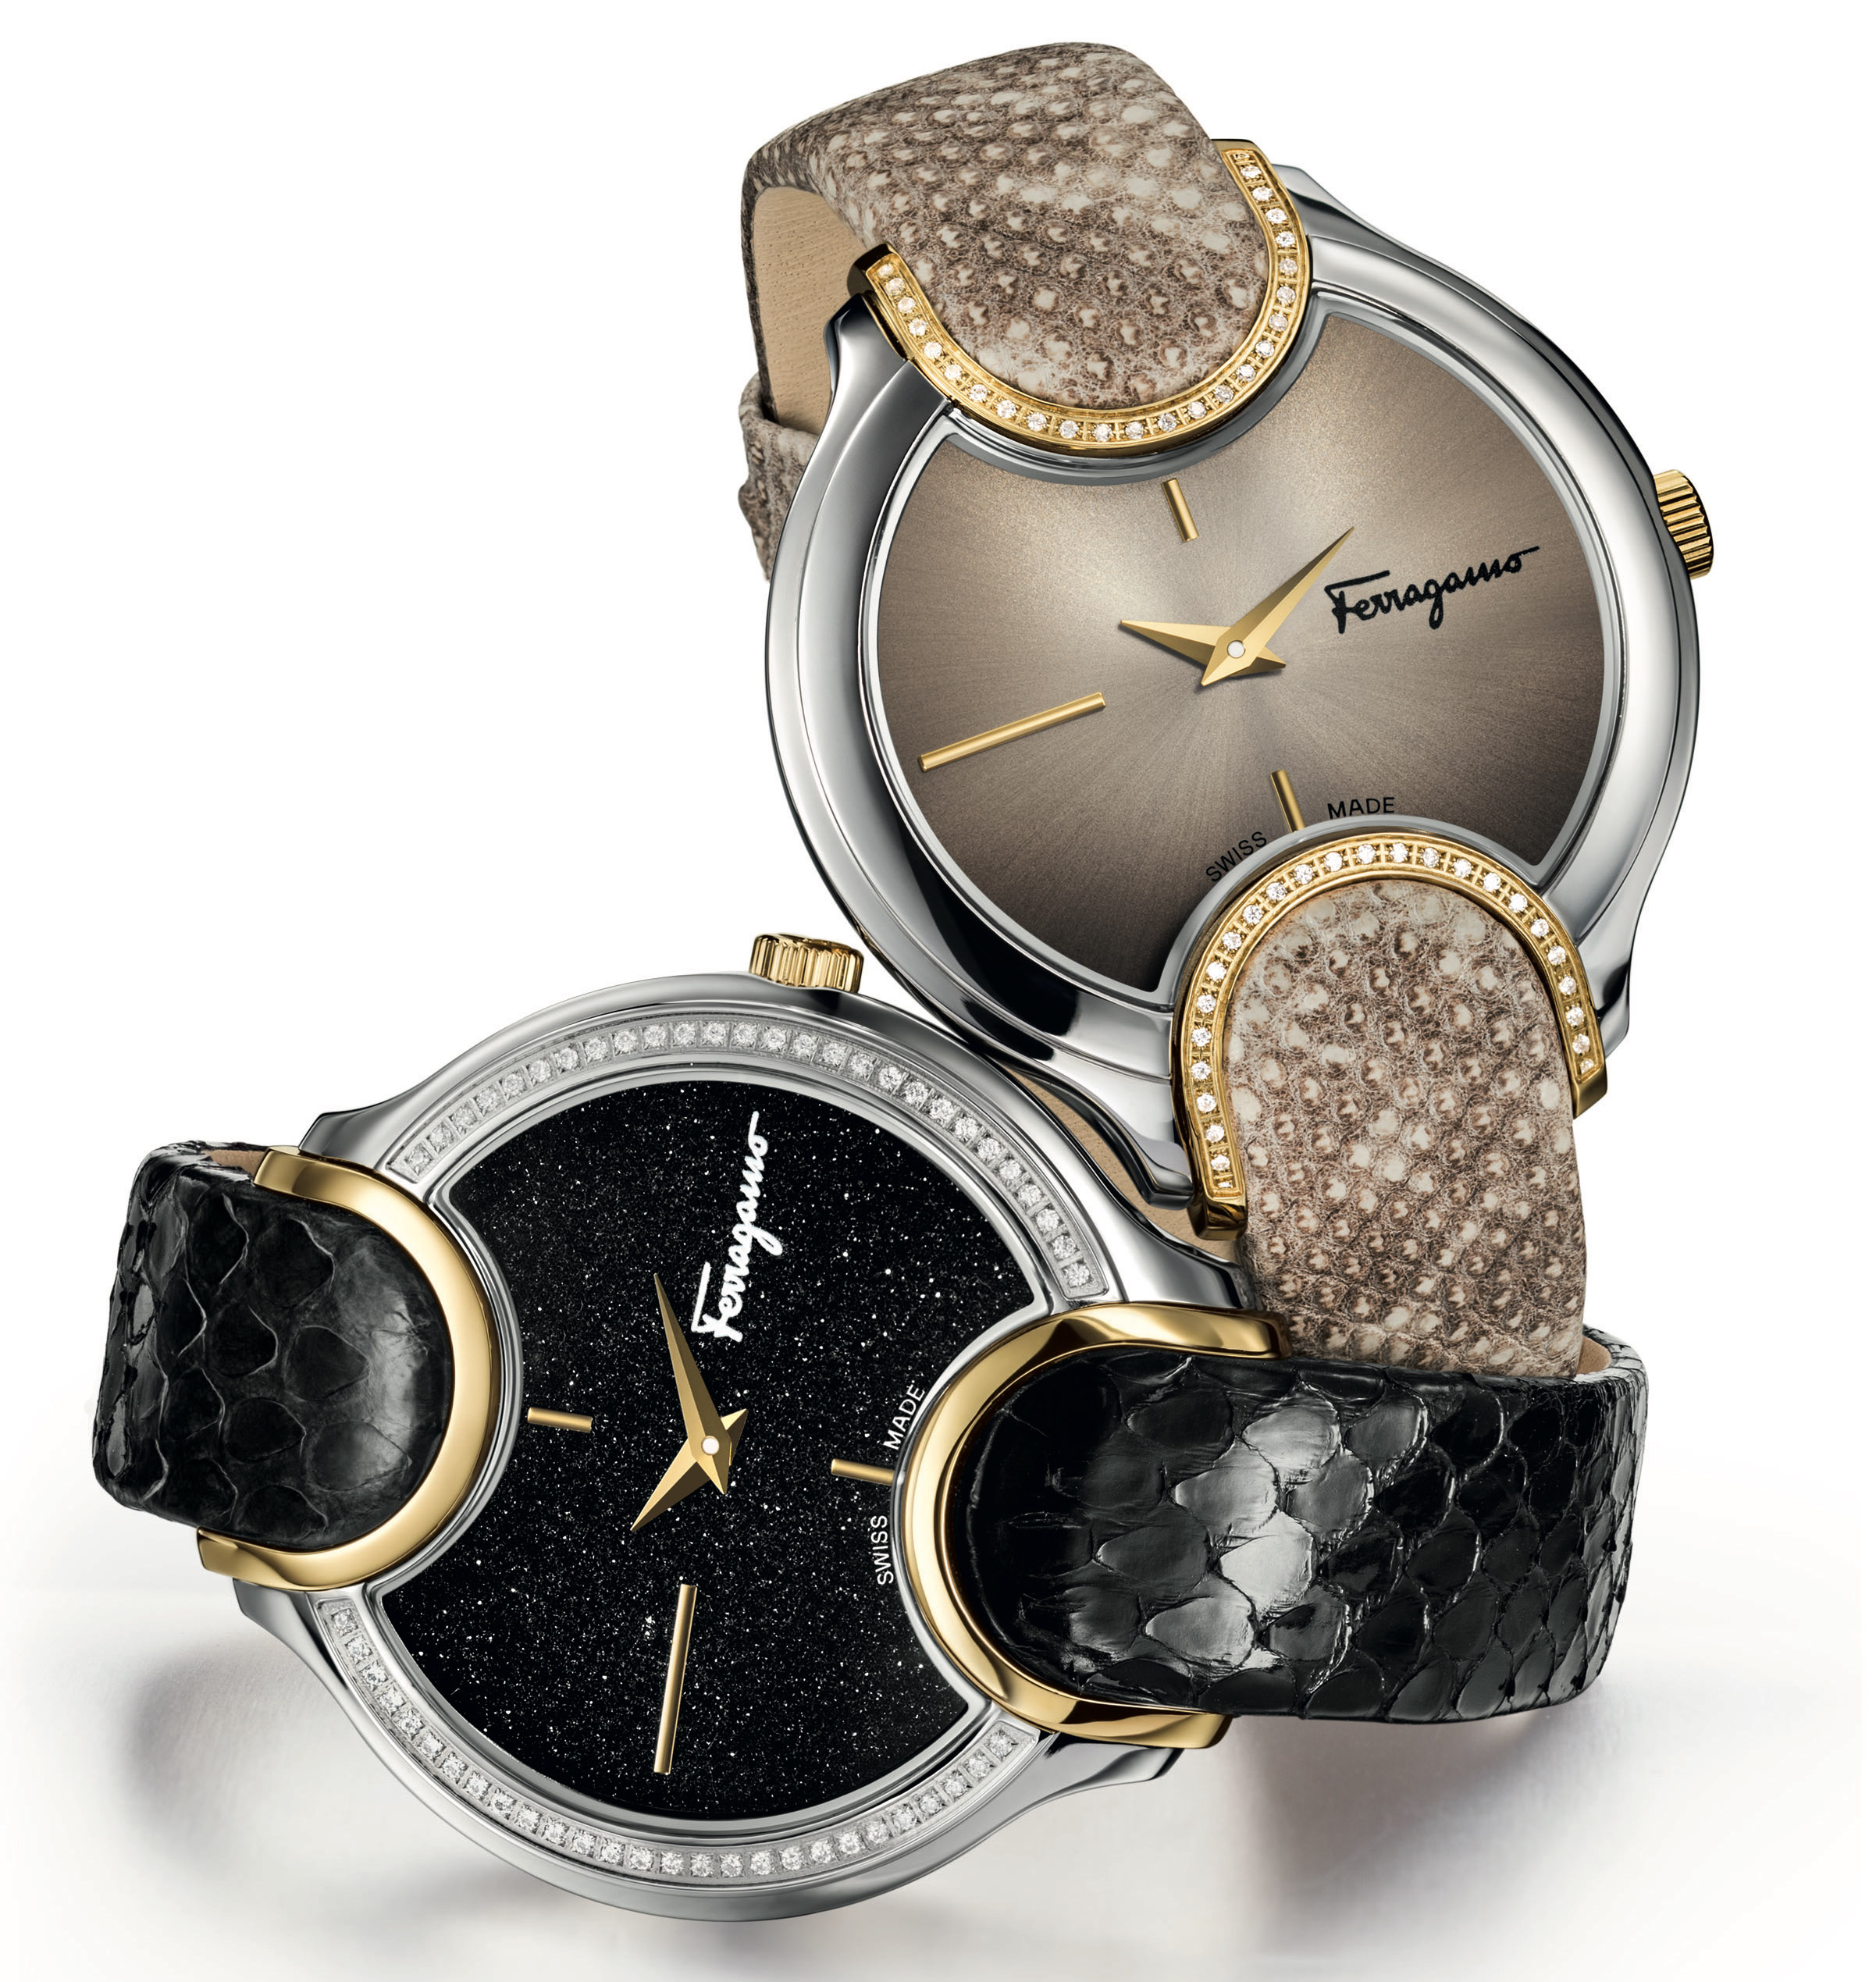 Salvatore Ferragamo Signature collection watches | JCK On Your Market